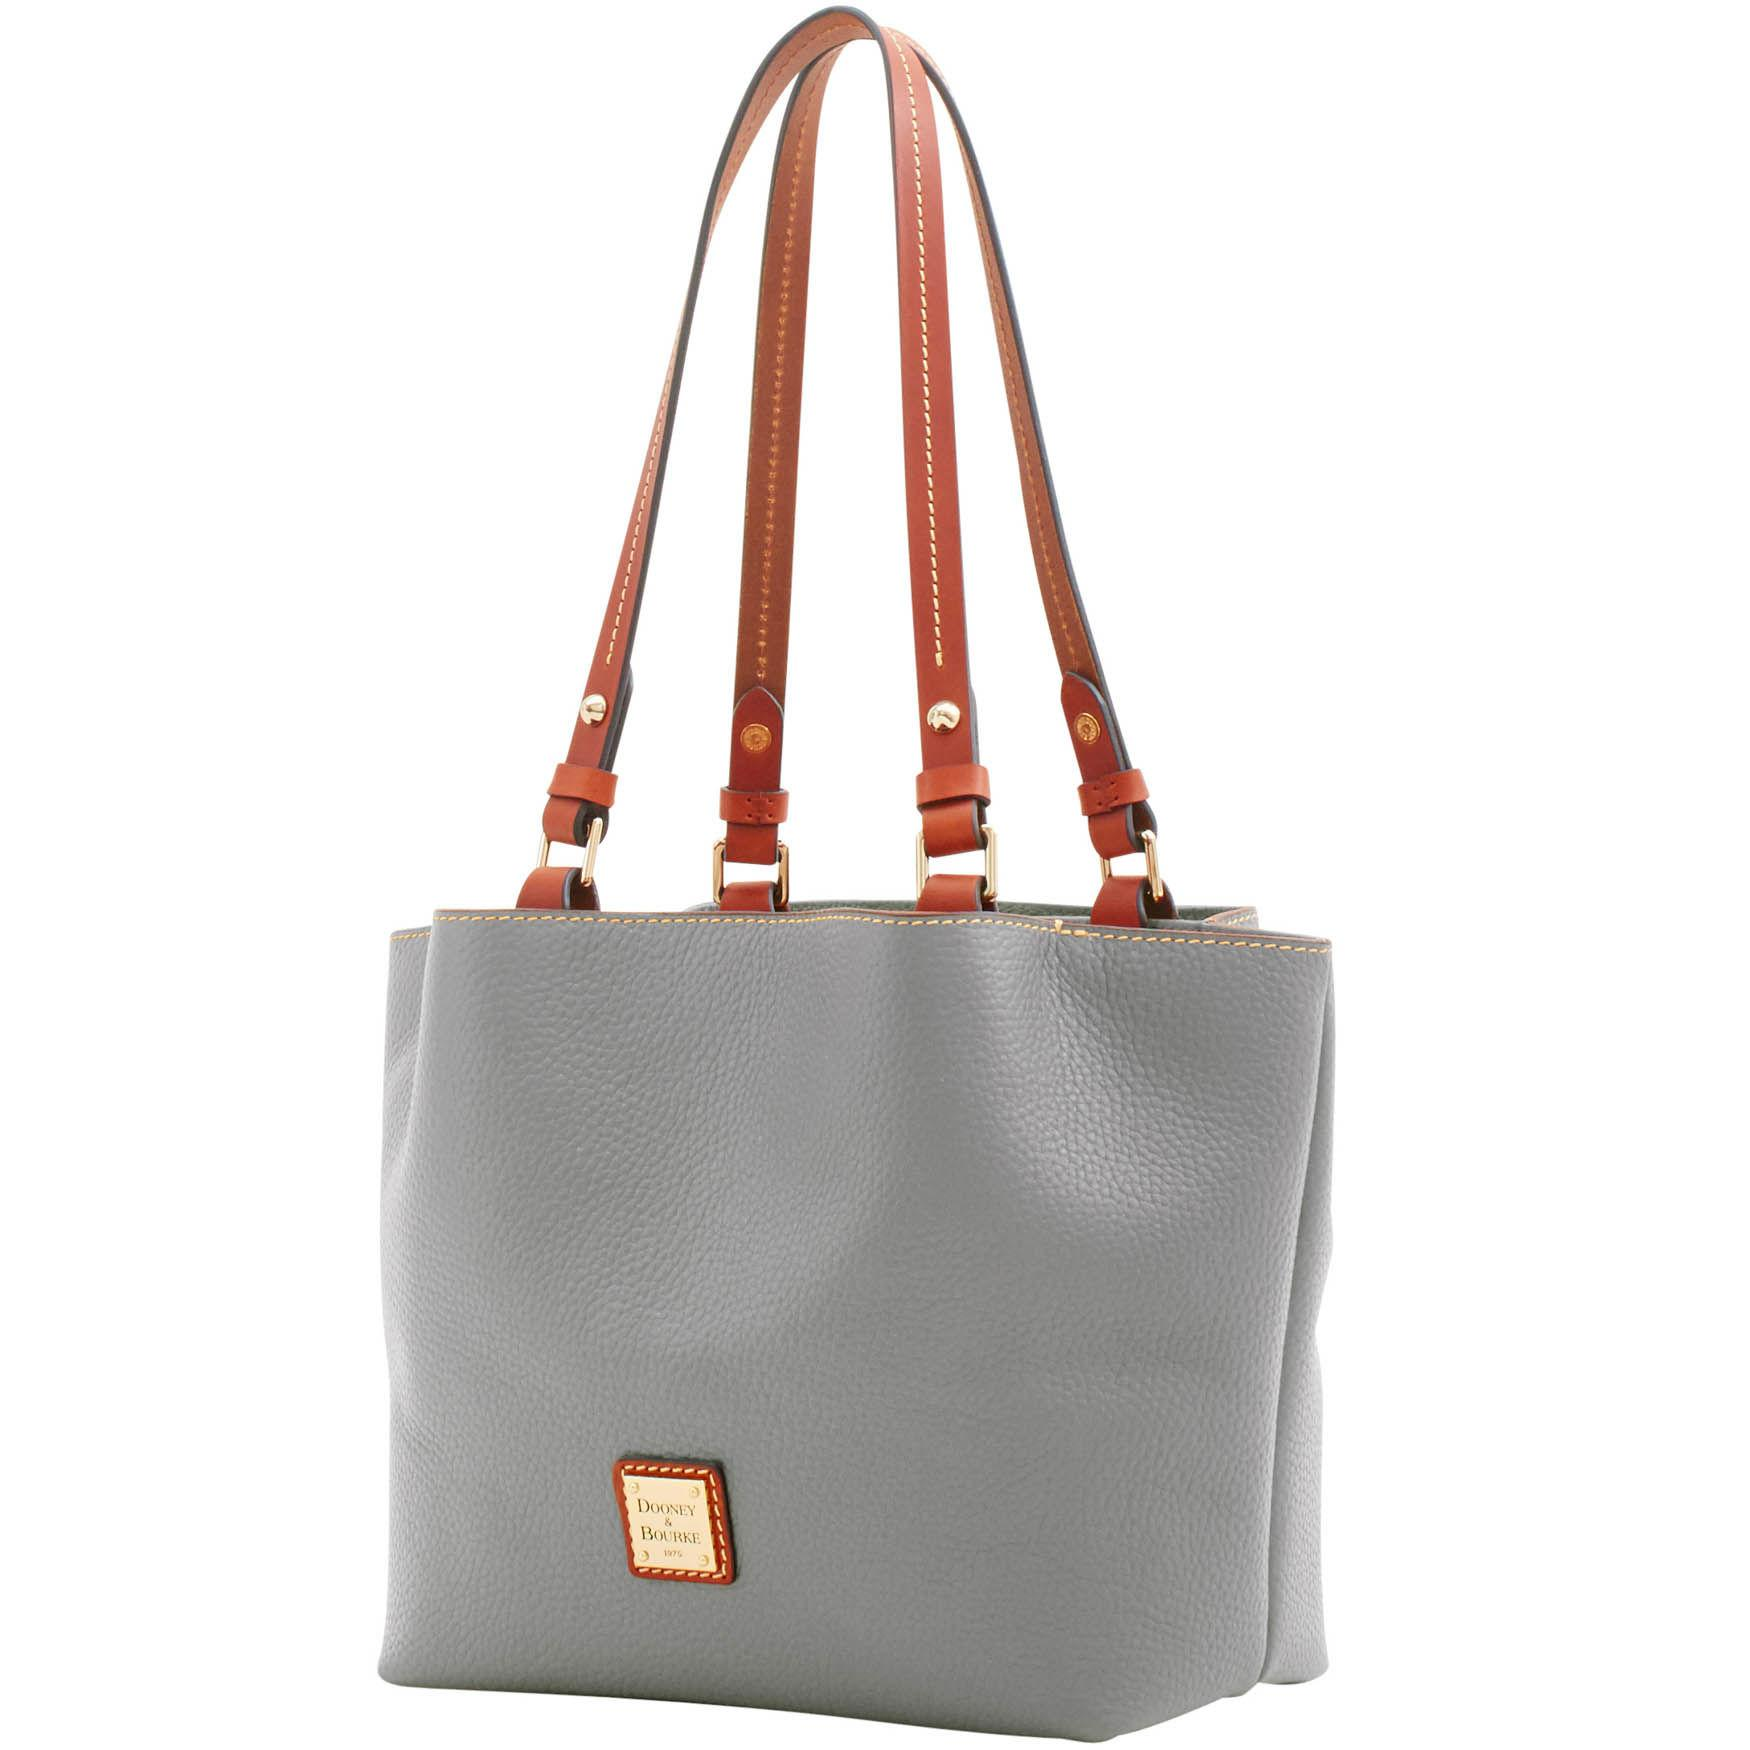 67063fc93d0c Dooney   Bourke - Multicolor Pebble Grain Small Flynn - Lyst. View  fullscreen